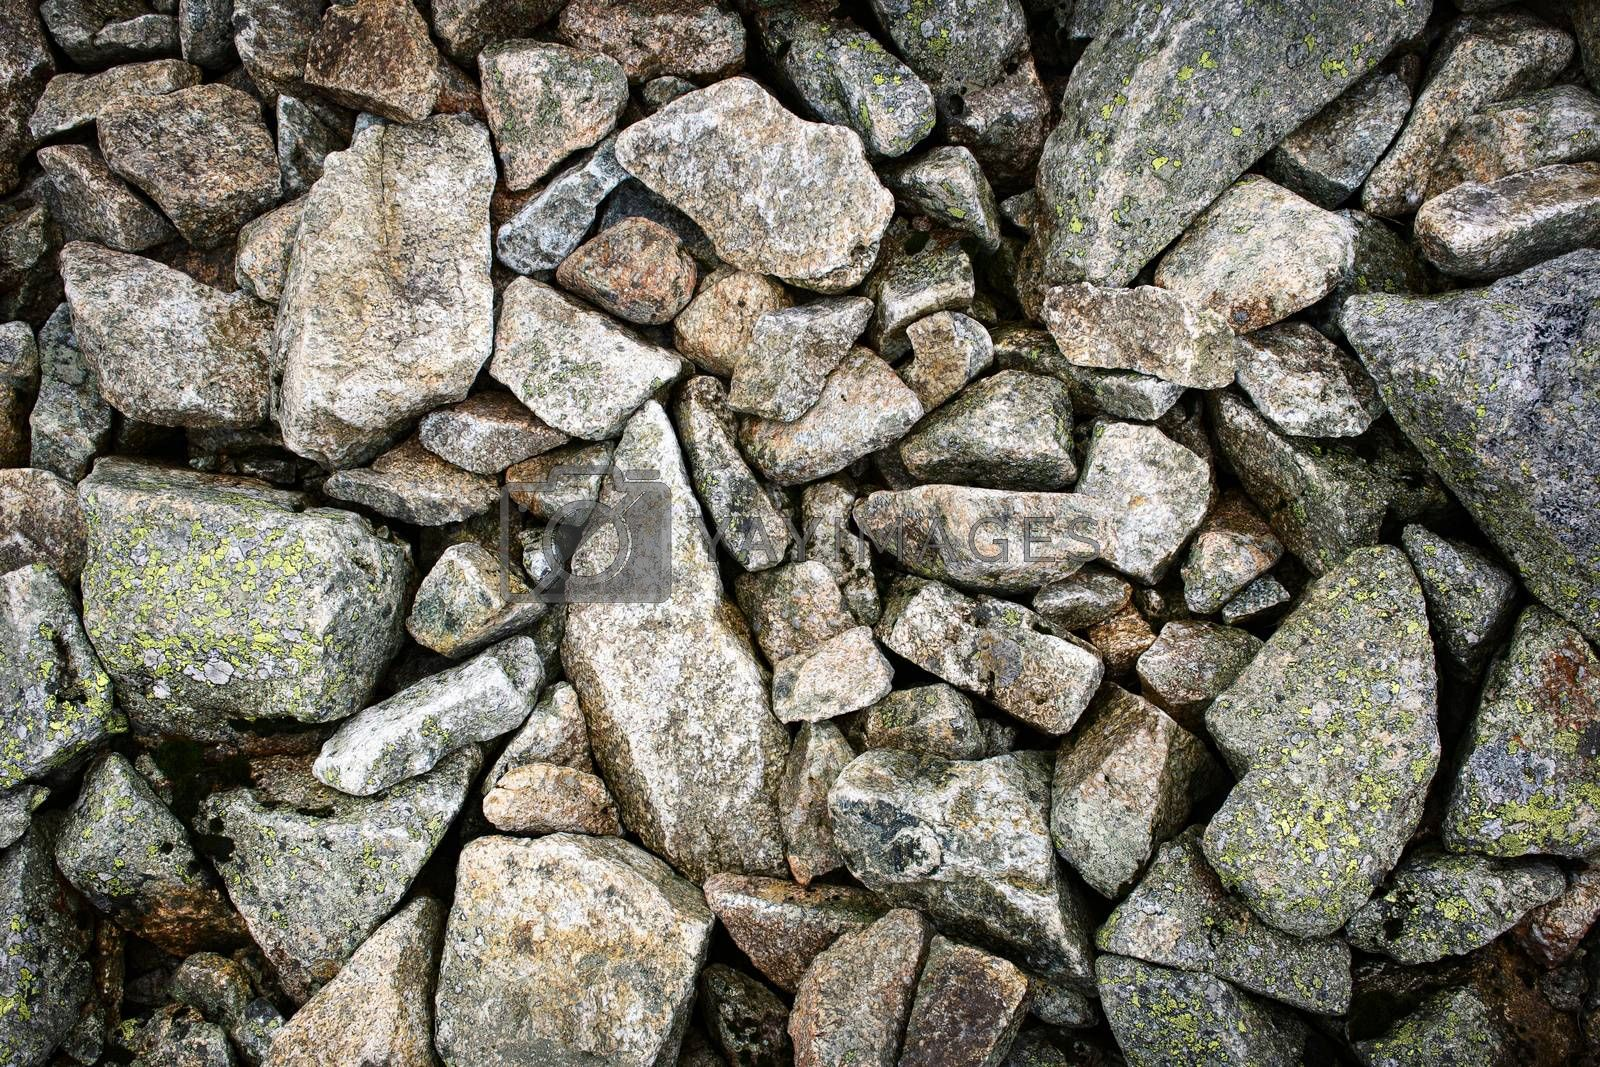 background or texture detail of a group of rubble stone